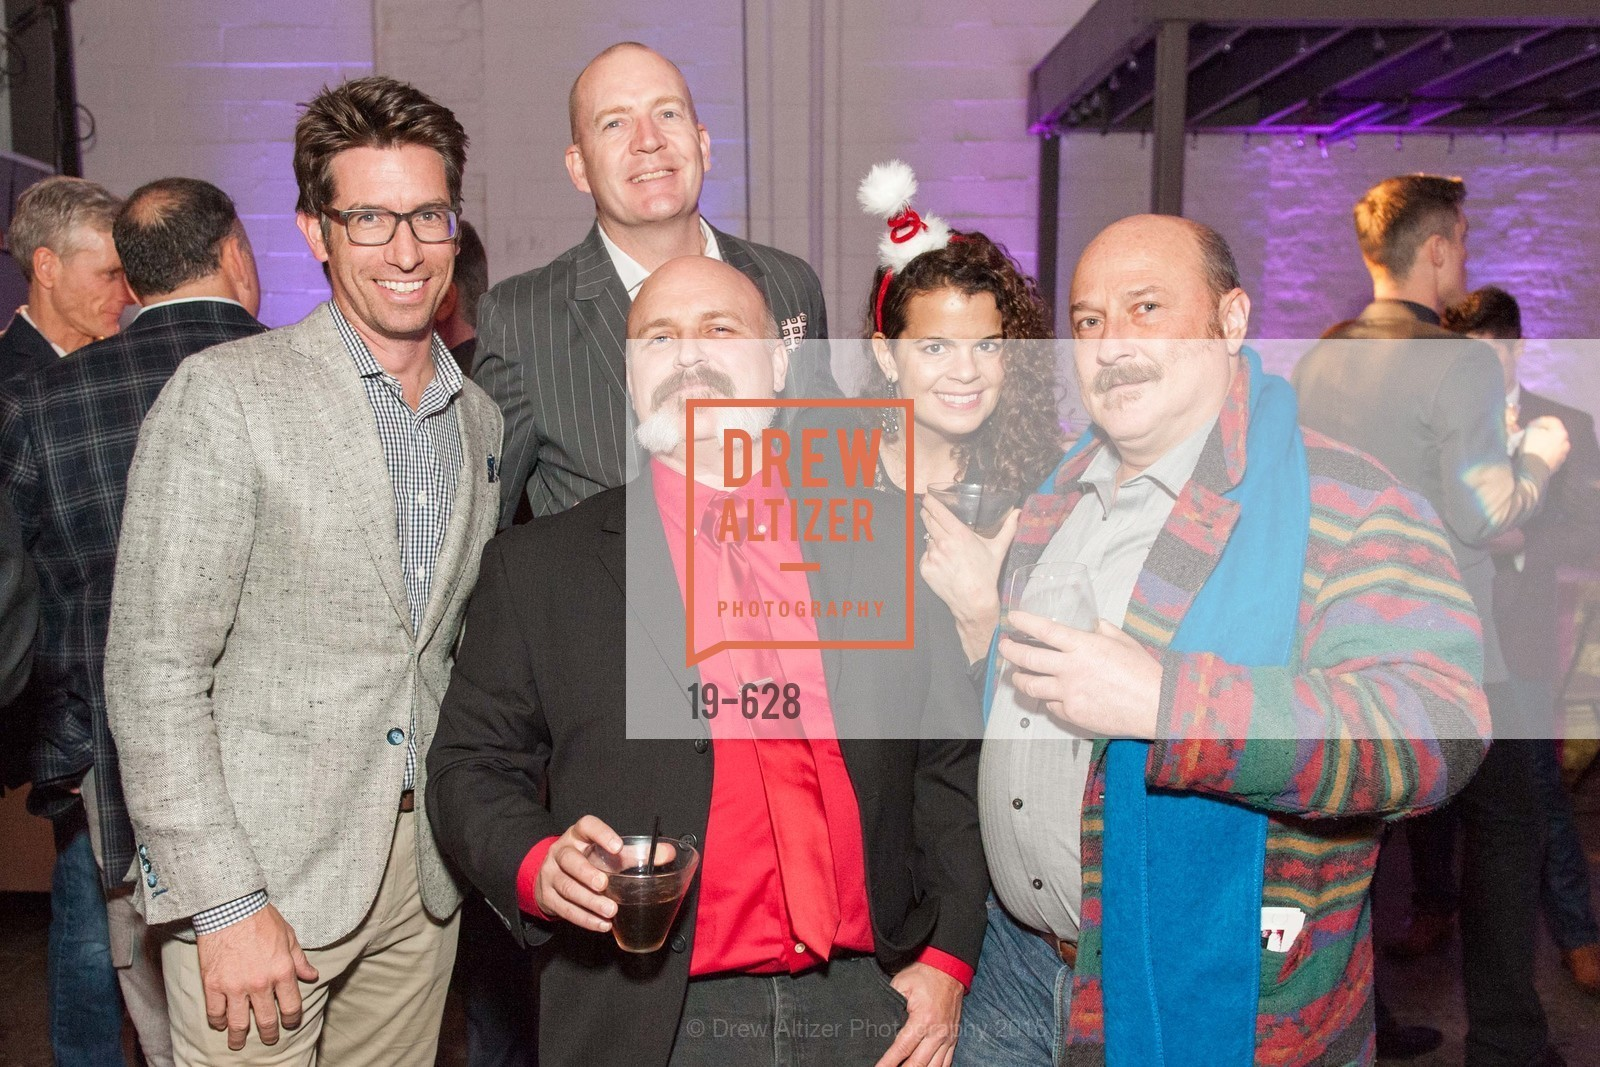 Jeff Schlarb, Tom Delaney, Reginald Baird, Tina Delaney, Bill Murphy, Gregg Lynn & Glenn Risso's Holiday Party, Blunome Winery, December 5th, 2015,Drew Altizer, Drew Altizer Photography, full-service agency, private events, San Francisco photographer, photographer california